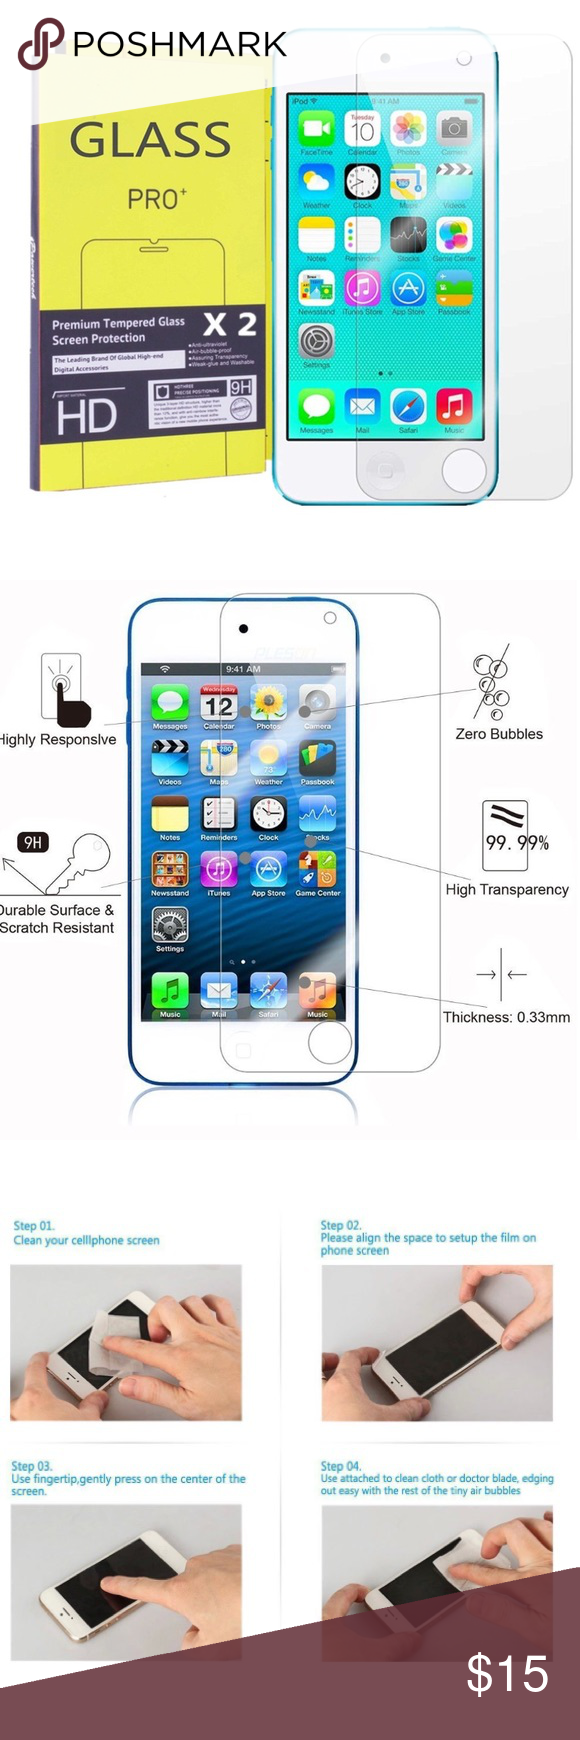 Electronics - iPod Screen Protector (x2) Anti-Scratch 9H Tempered Glass Screen Protector for iPod Touch 6 and 5 Gen - 2 Pack ✅Great deal!✅ Save with bundle discounts I also offer customized bundles  Interested? Leave a comment below  ~~~~~~~~~~~~~~~~~~~~~~~~~~~~~~ apple Accessories Phone Cases